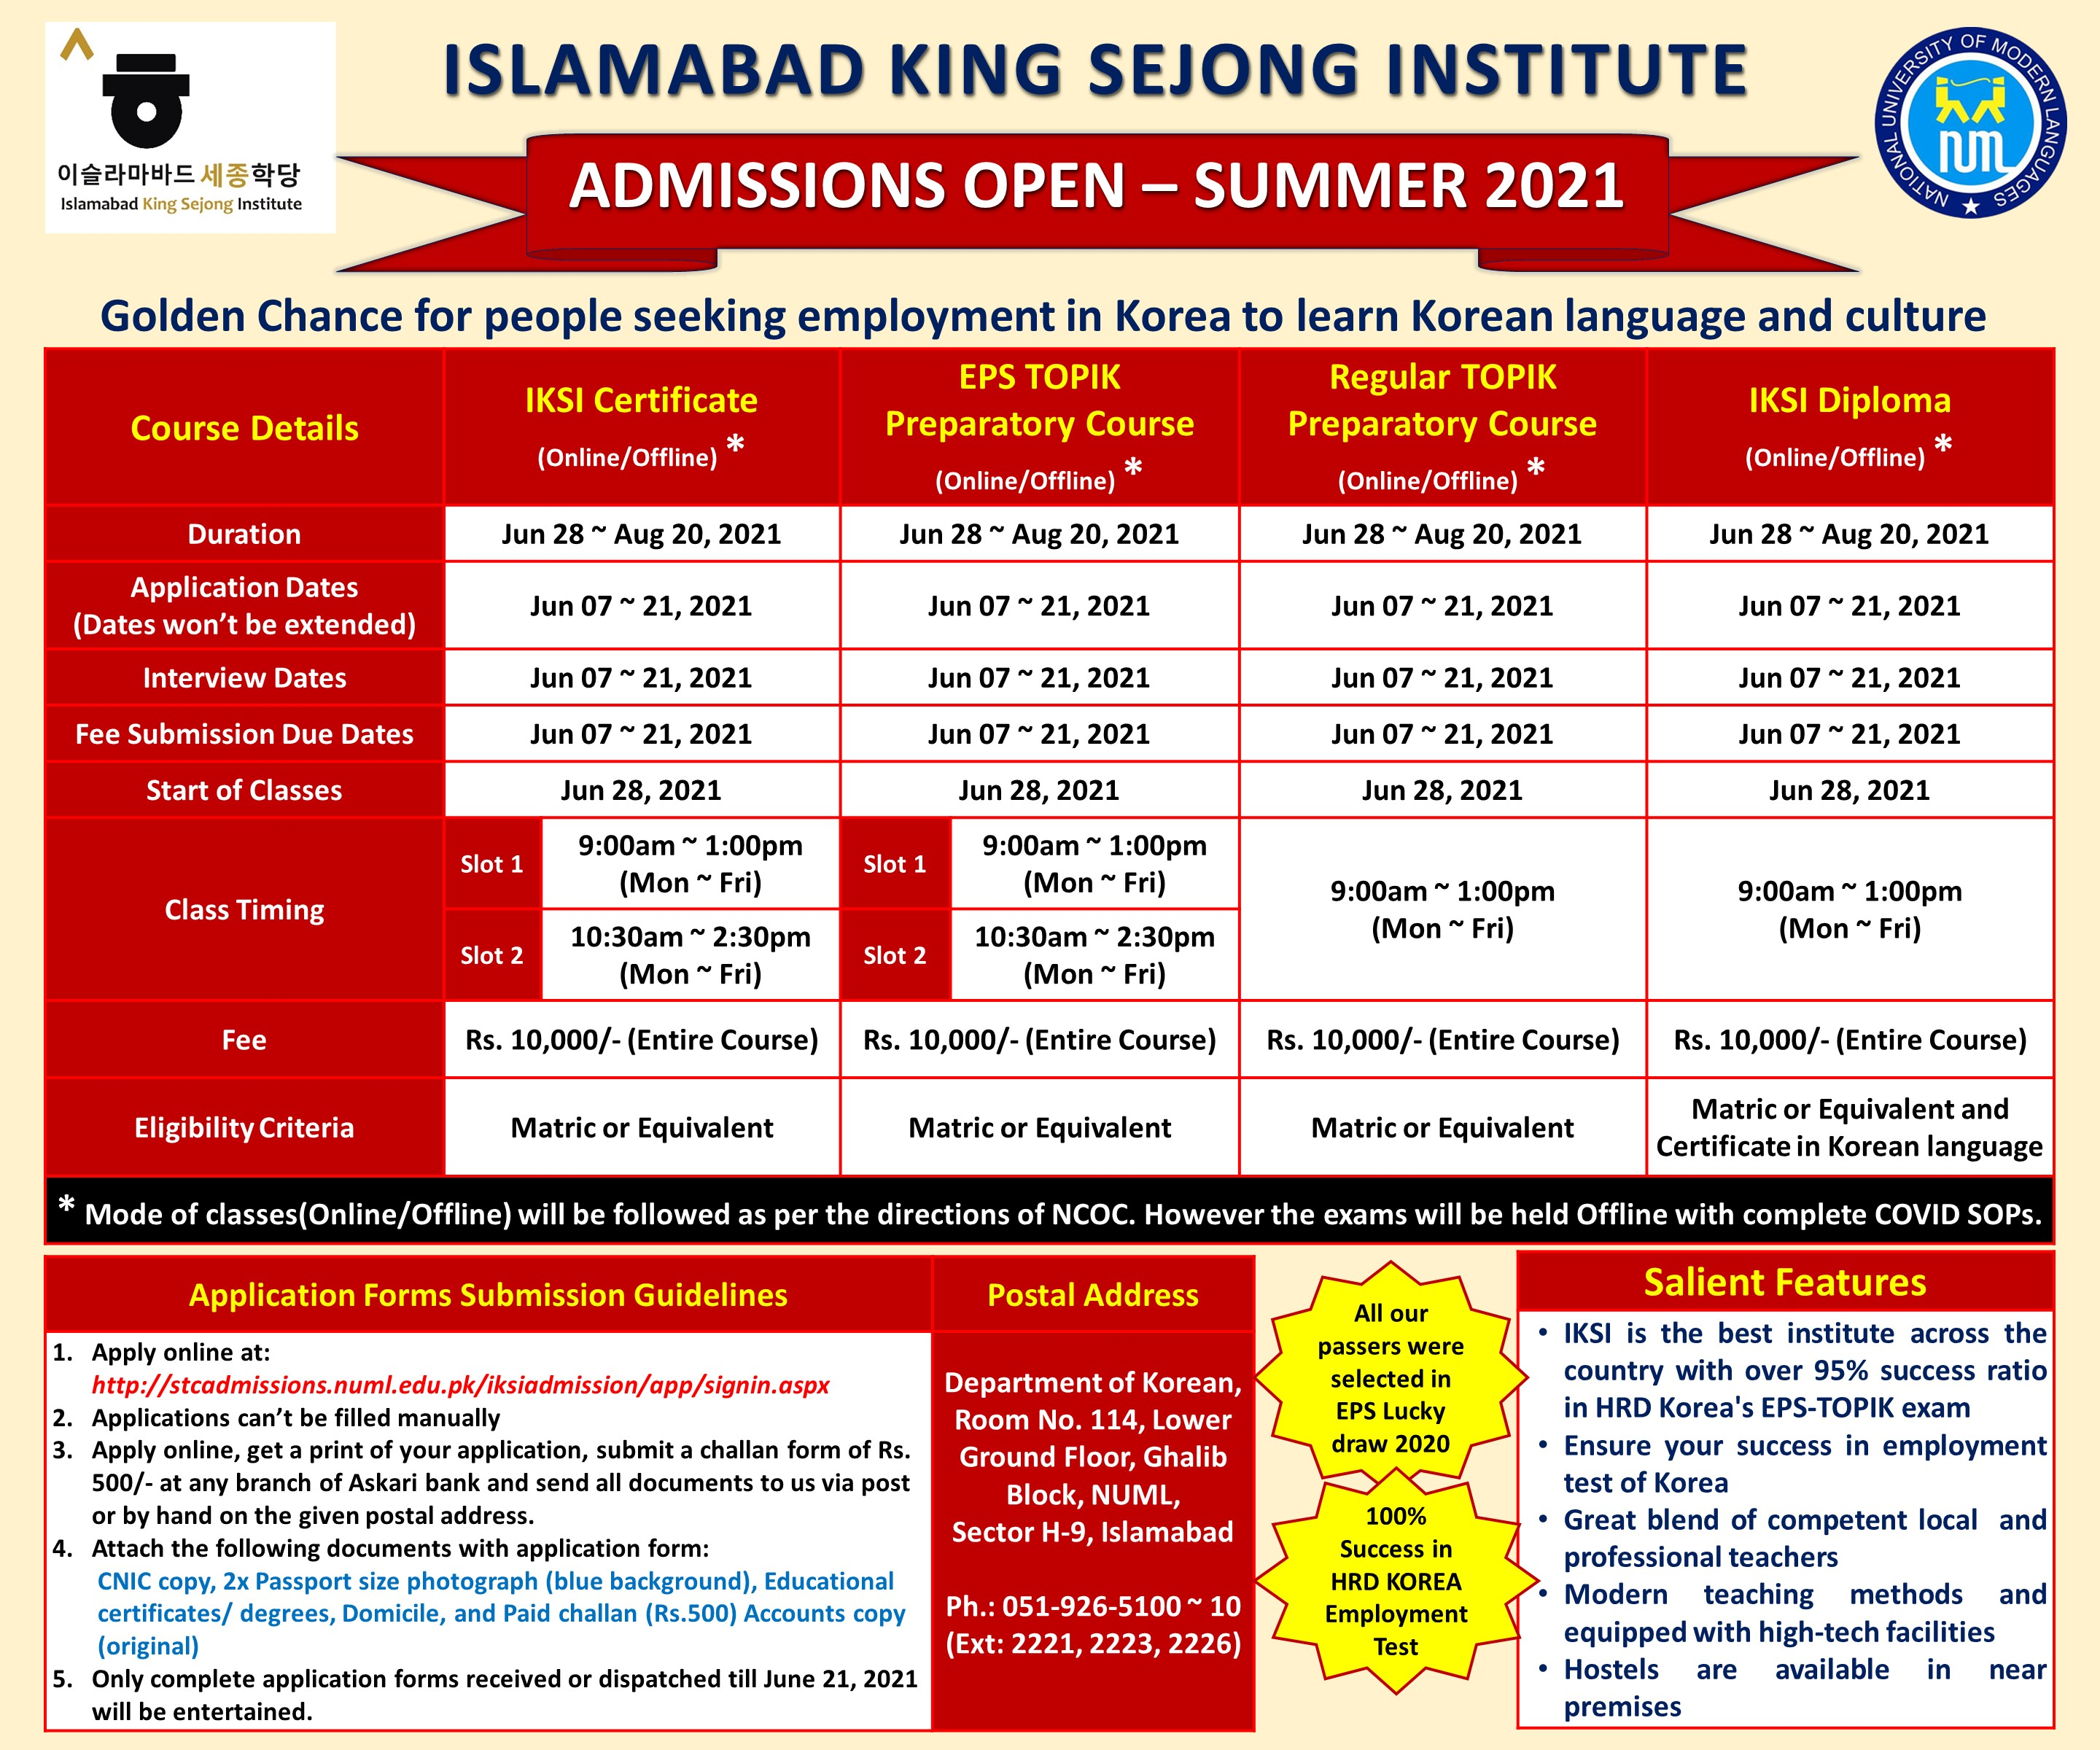 ISLAMABAD KING SEJONG INSTITUTE - SUMMER 2021 ADMISSION OPEN